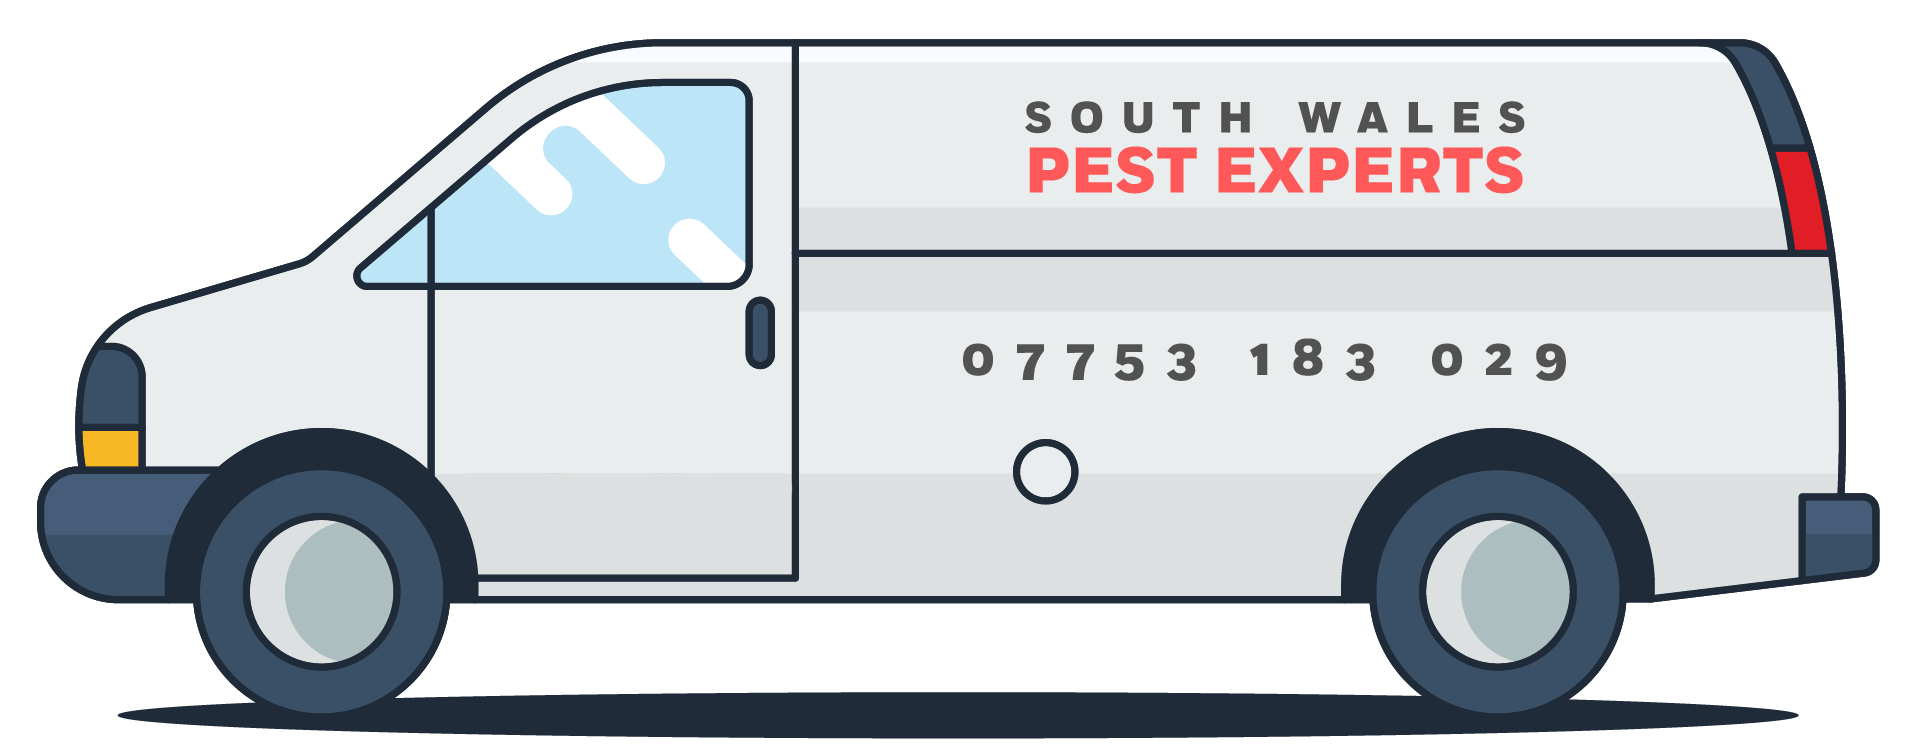 South Wales Pest Experts